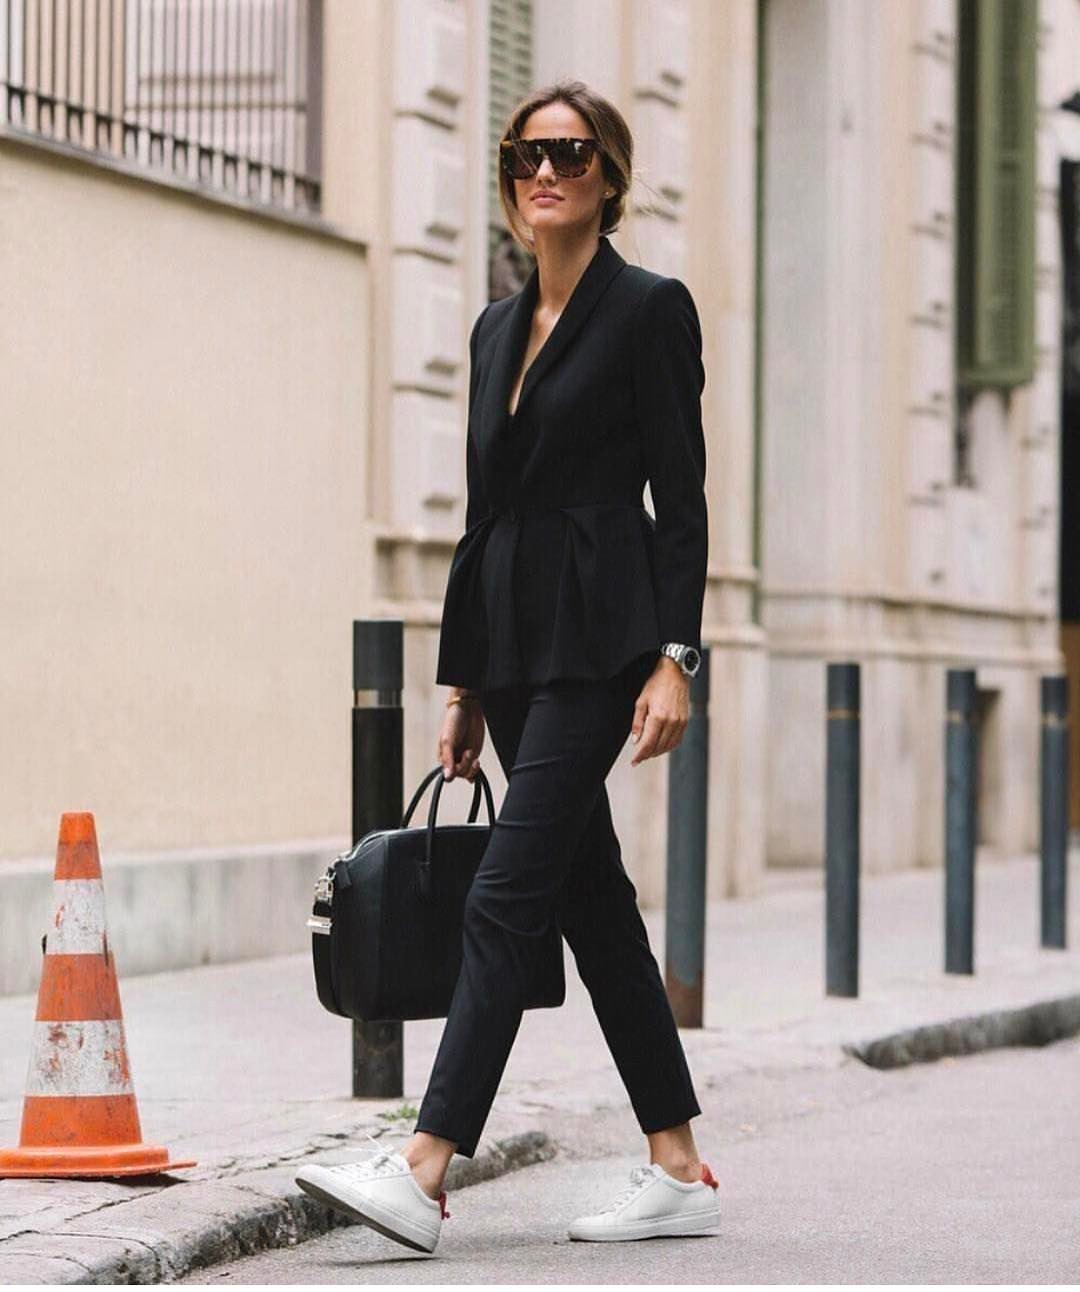 Black Pantsuit And White Sneakers Combination 2019